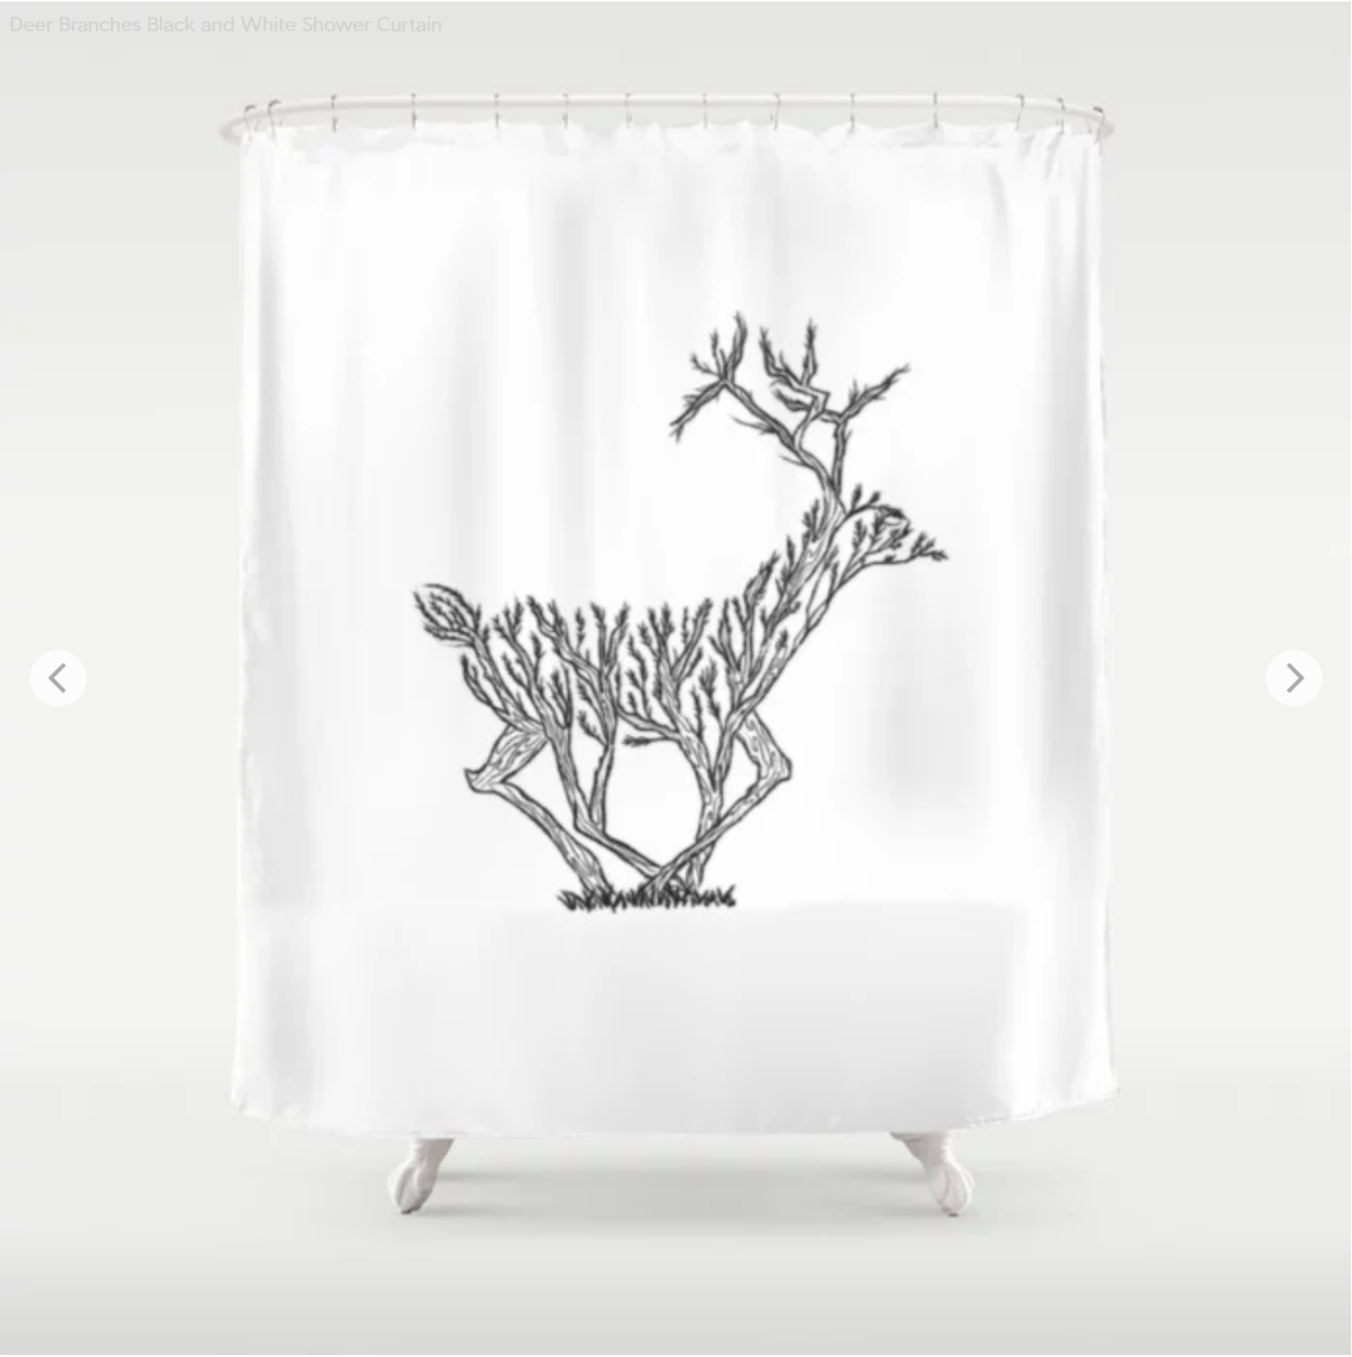 My Custom Designed Winter Deer Is Available On Bathroom Accessories Too Like This Shower Curtain And Bath Mats Only For Sale Society6